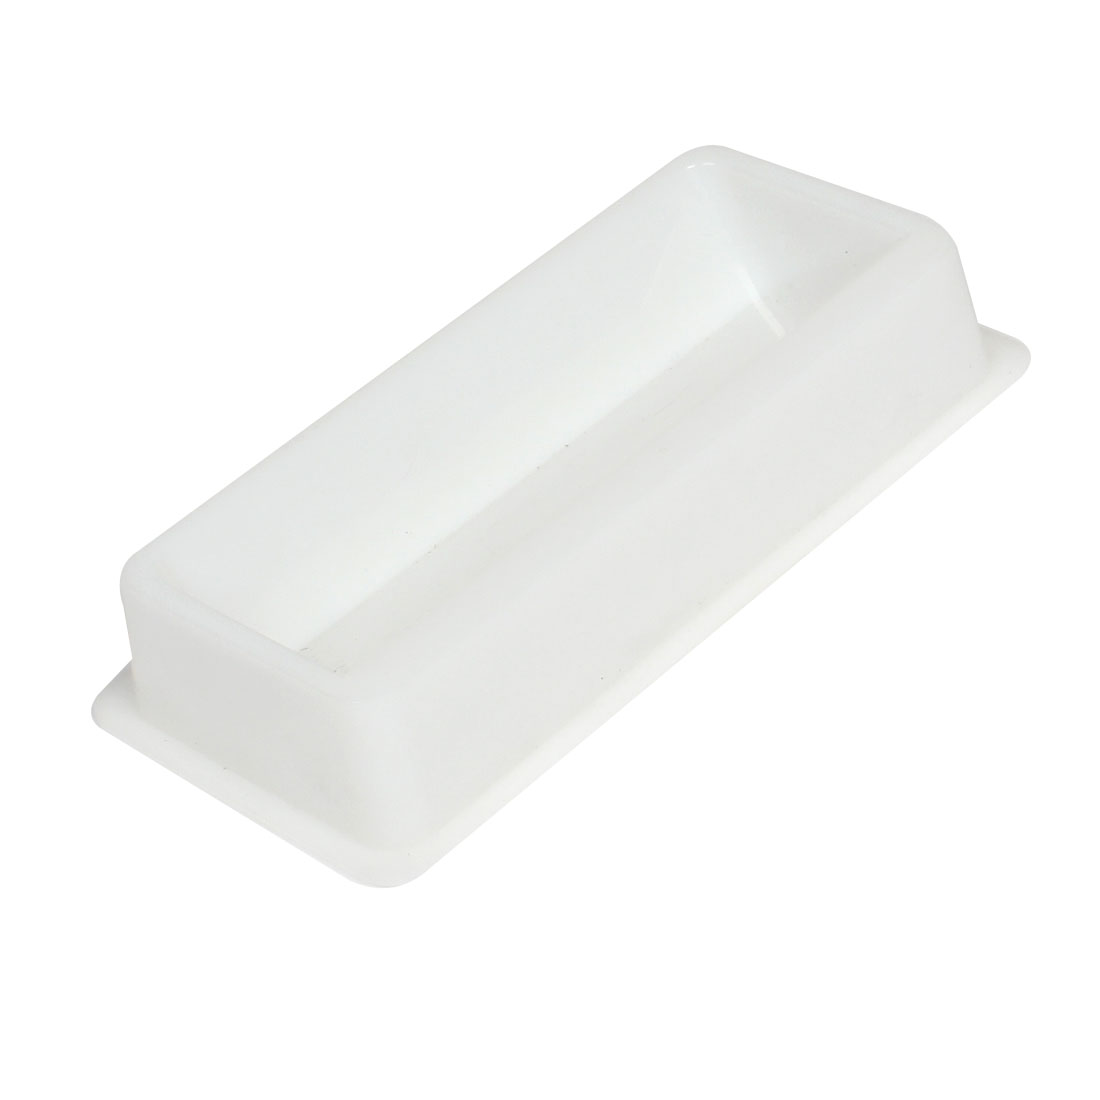 50mL Capacity White Plastic Liquid Transfer Trough for Lab